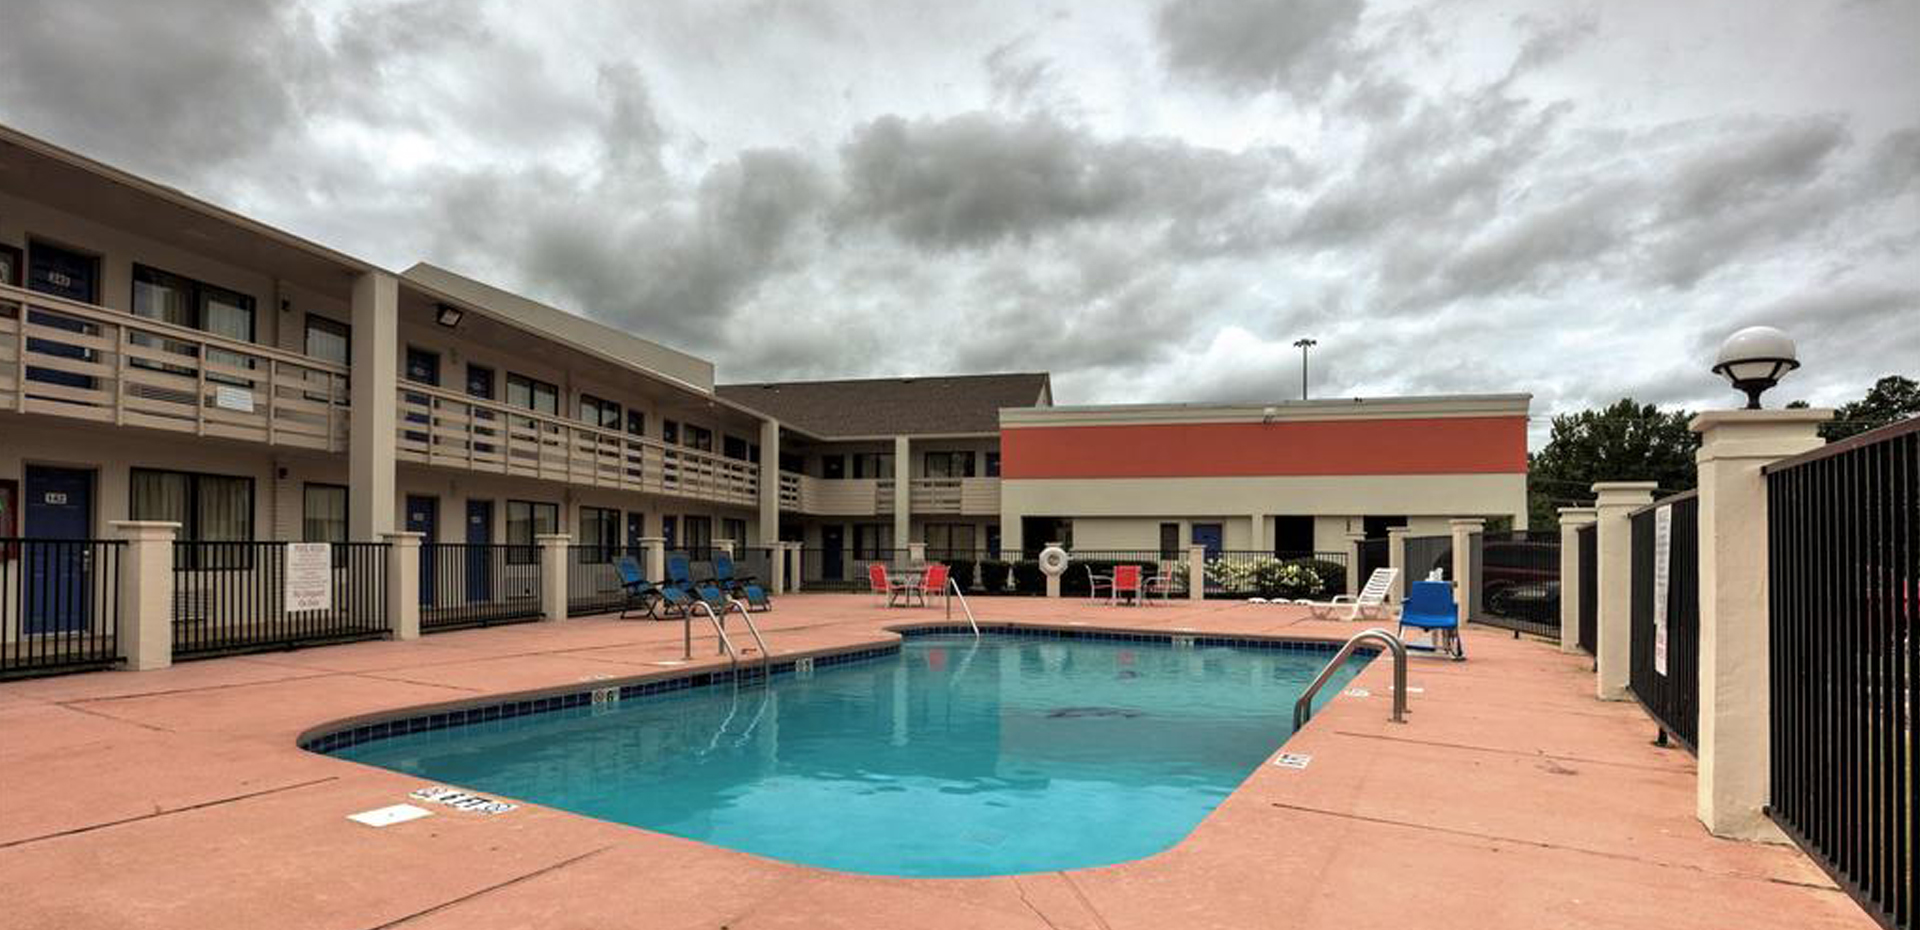 Hotel in Tupelo Mississippi | Tupelo Regional Airport Hotels